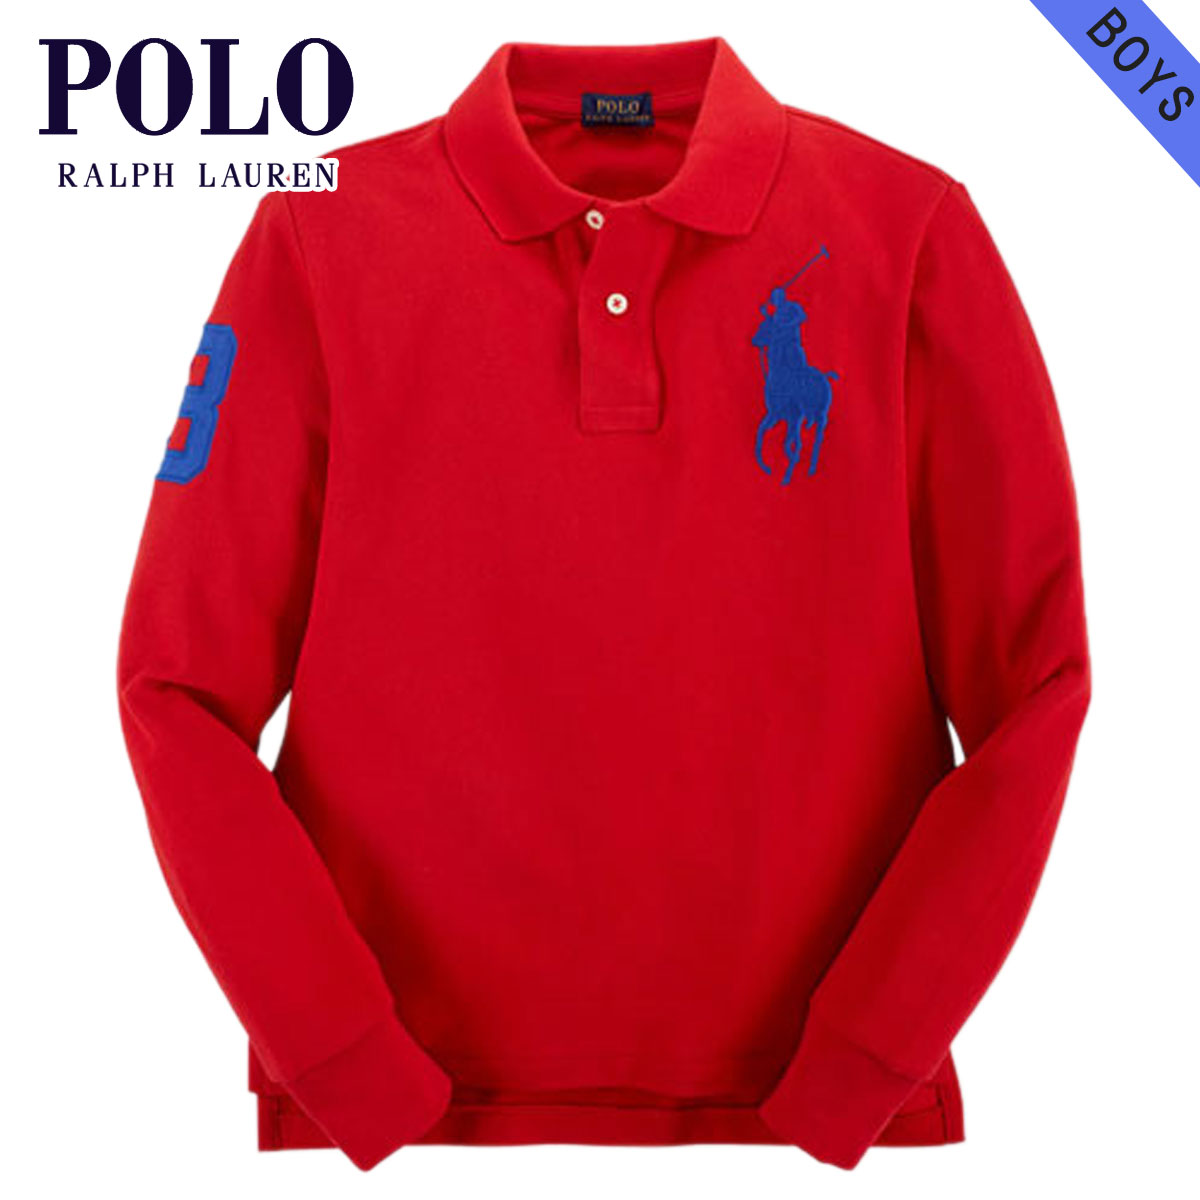 Poloralflorenkids POLO RALPH LAUREN CHILDREN genuine kids clothes boys long sleeve polo shirts CUSTOM-FIT BIG PONY SHIRT 37716606